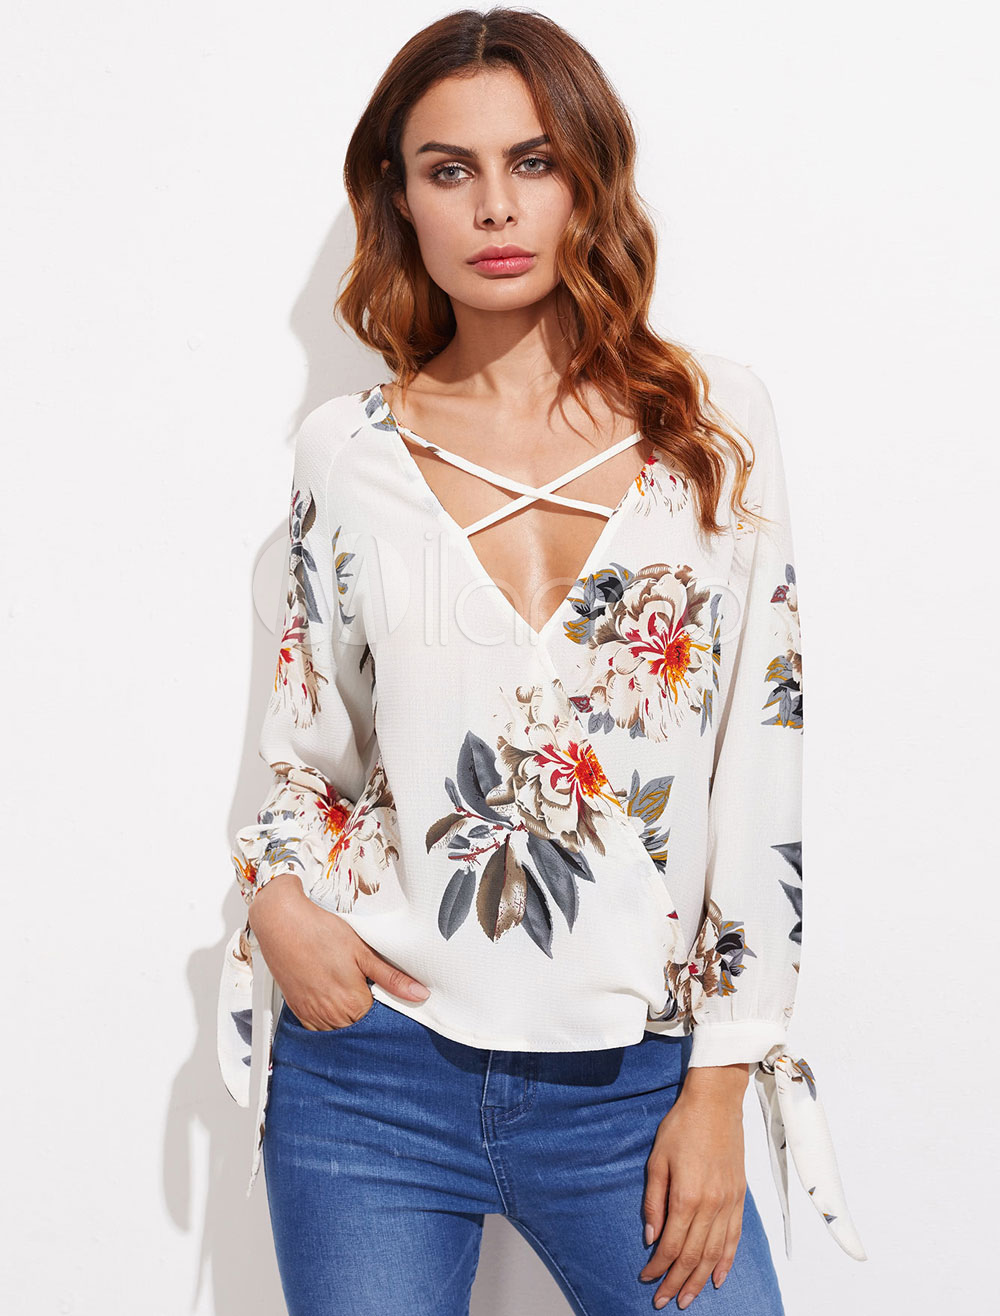 Buy White Women's Blouses V Neck Long Sleeve Criss Cross Floral Print Top for $18.99 in Milanoo store